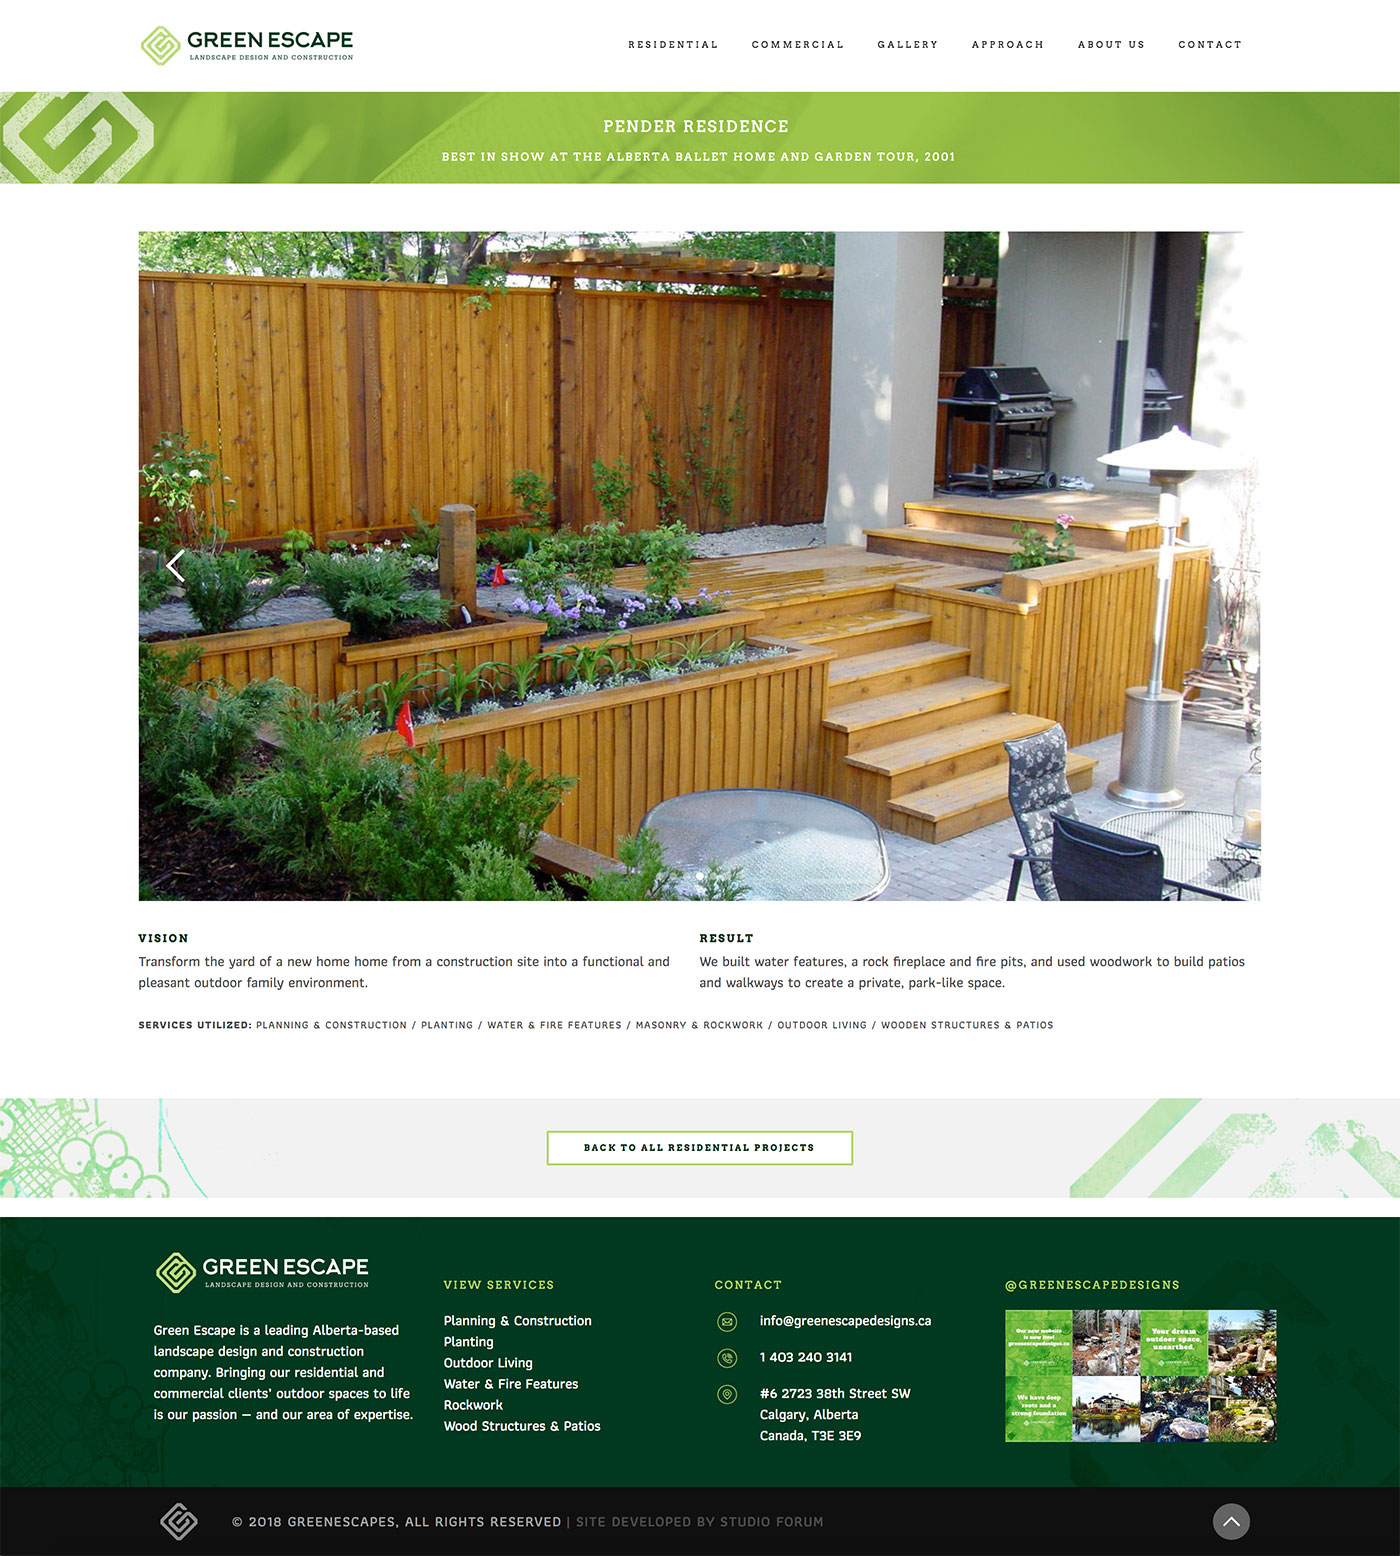 Green Escape Designs web design showing a gallery page backyard garden patio by Studio Forum